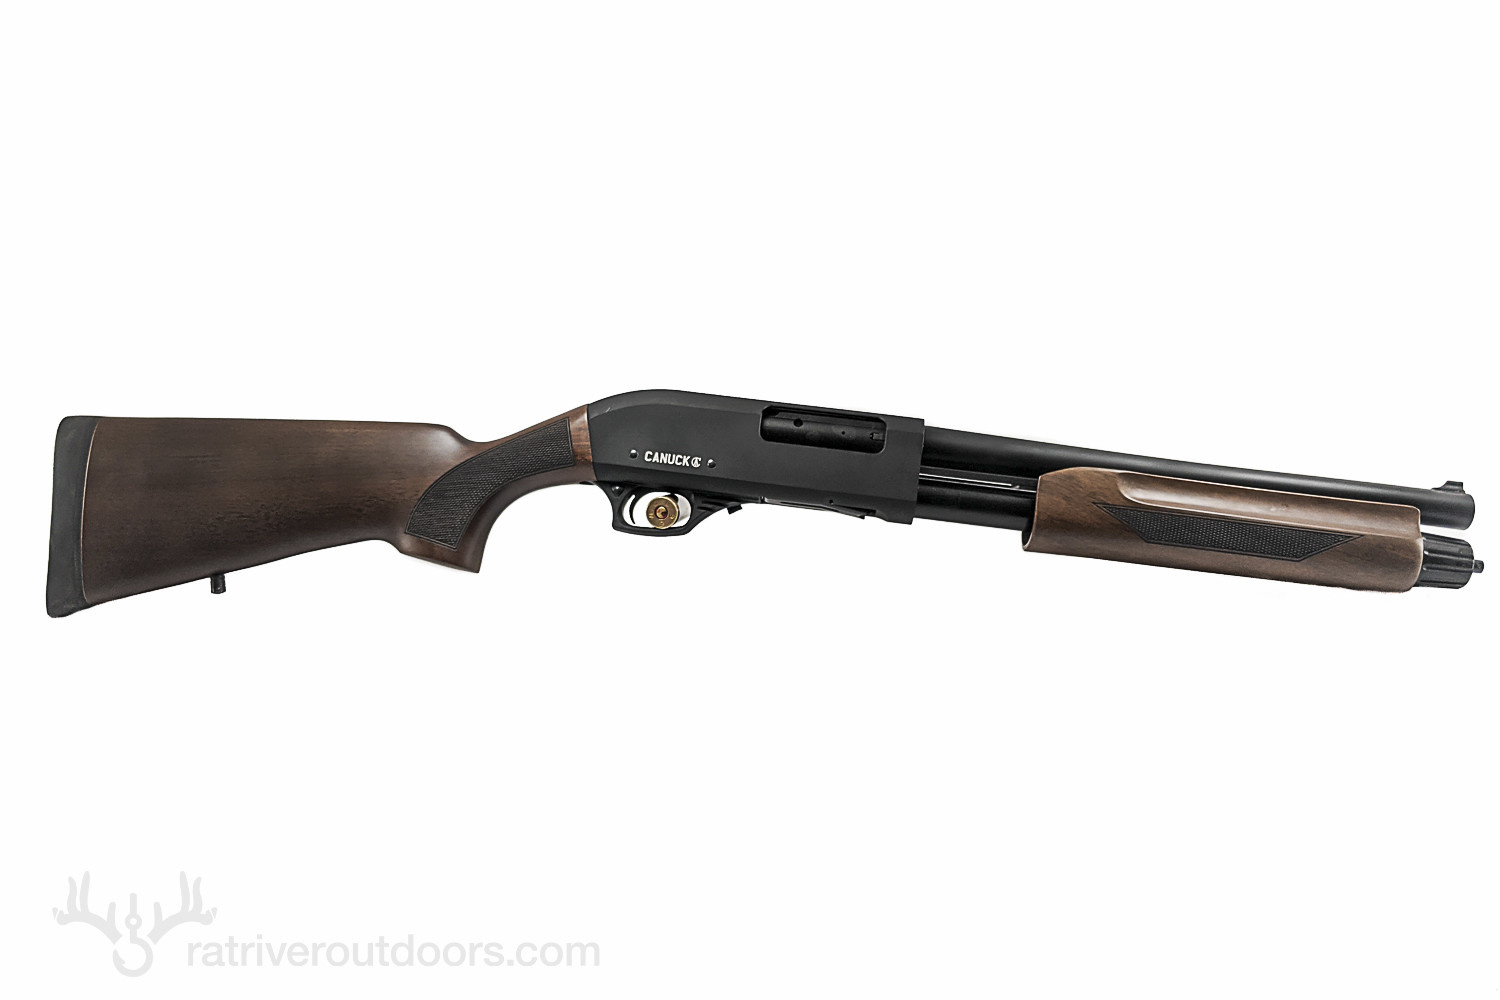 "Canuck Defender 12ga 14"" Barrel Shotgun"